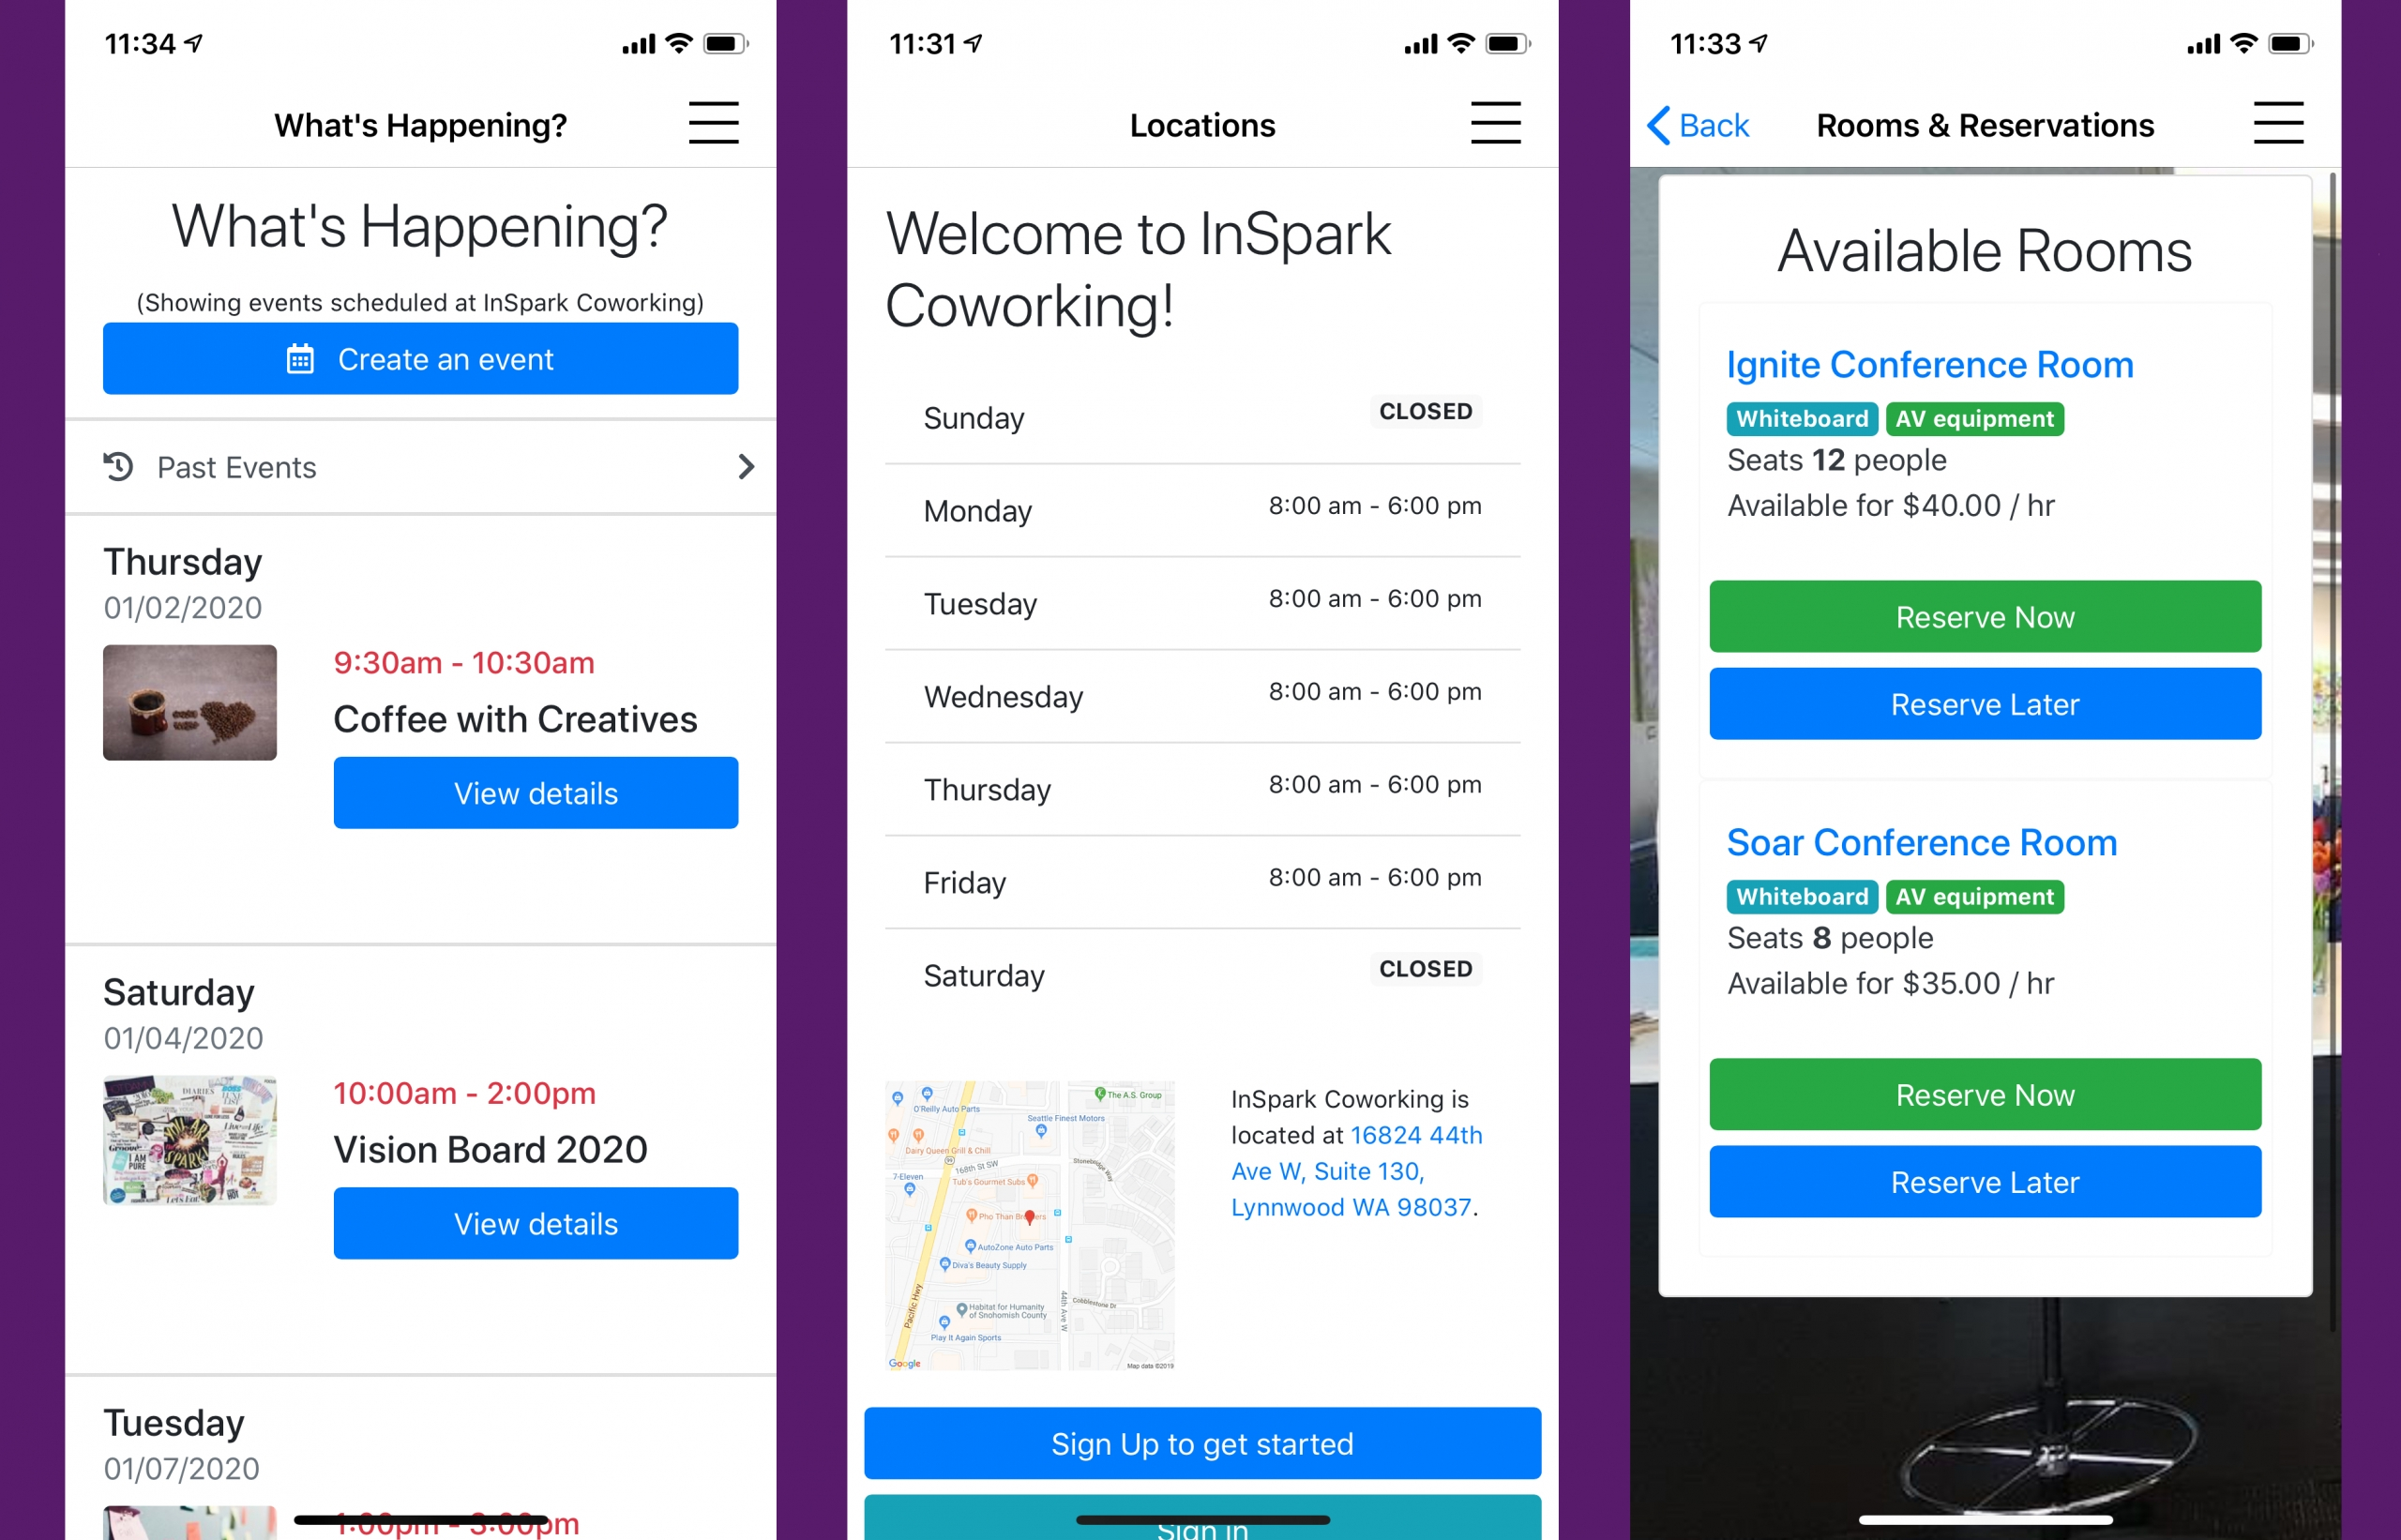 Introducing the InSpark Coworking App!